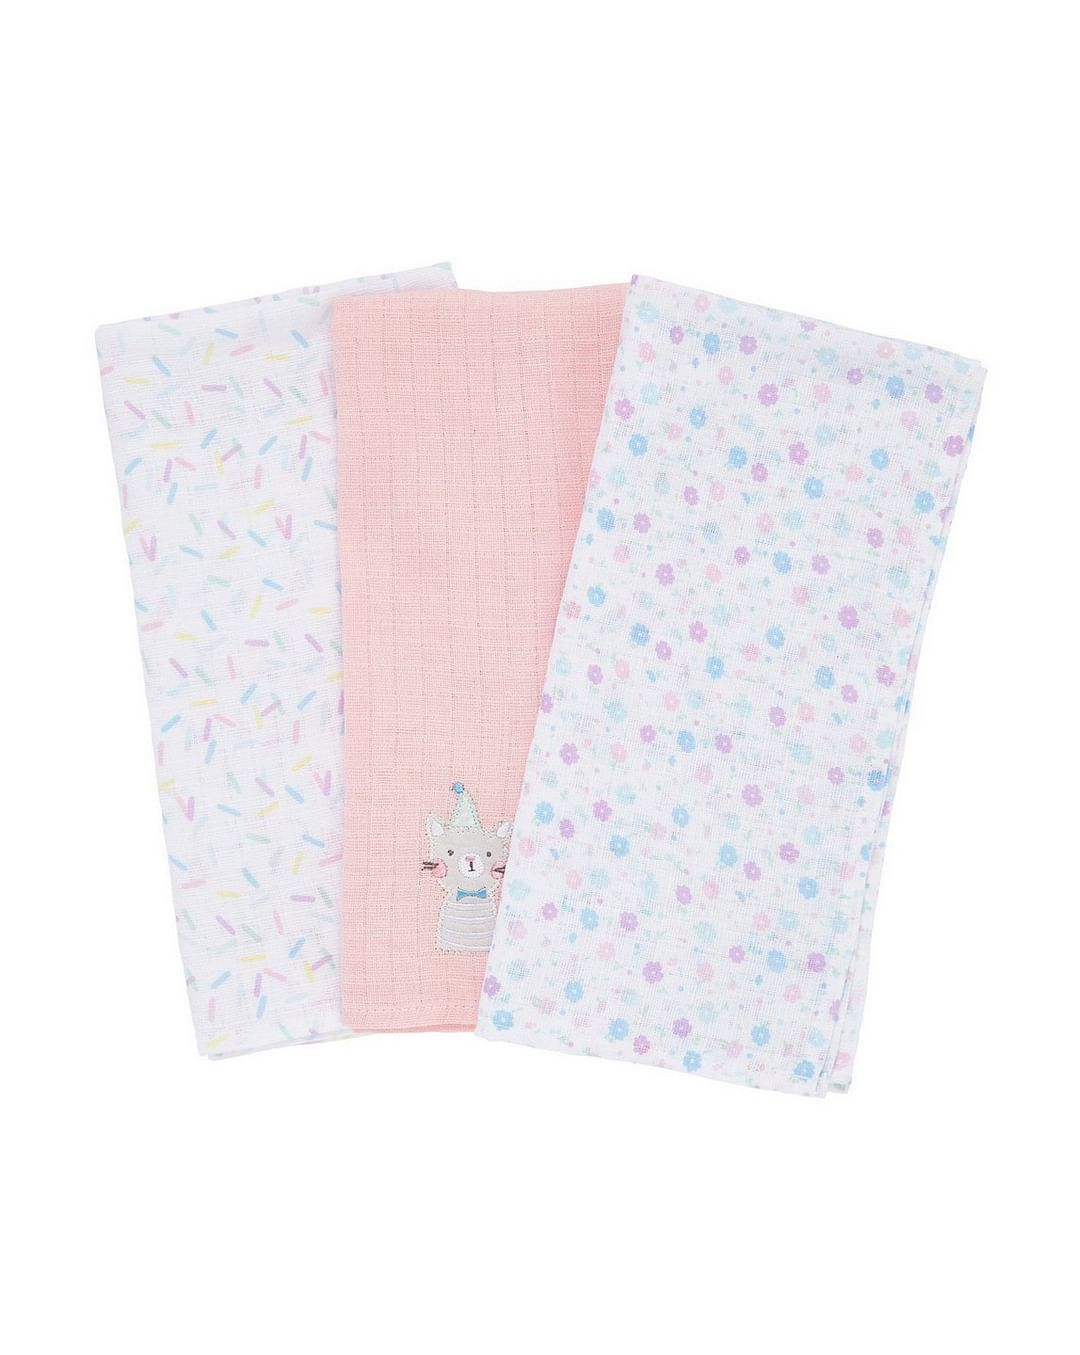 Mothercare | Confetti Party Muslins - Pack of 3